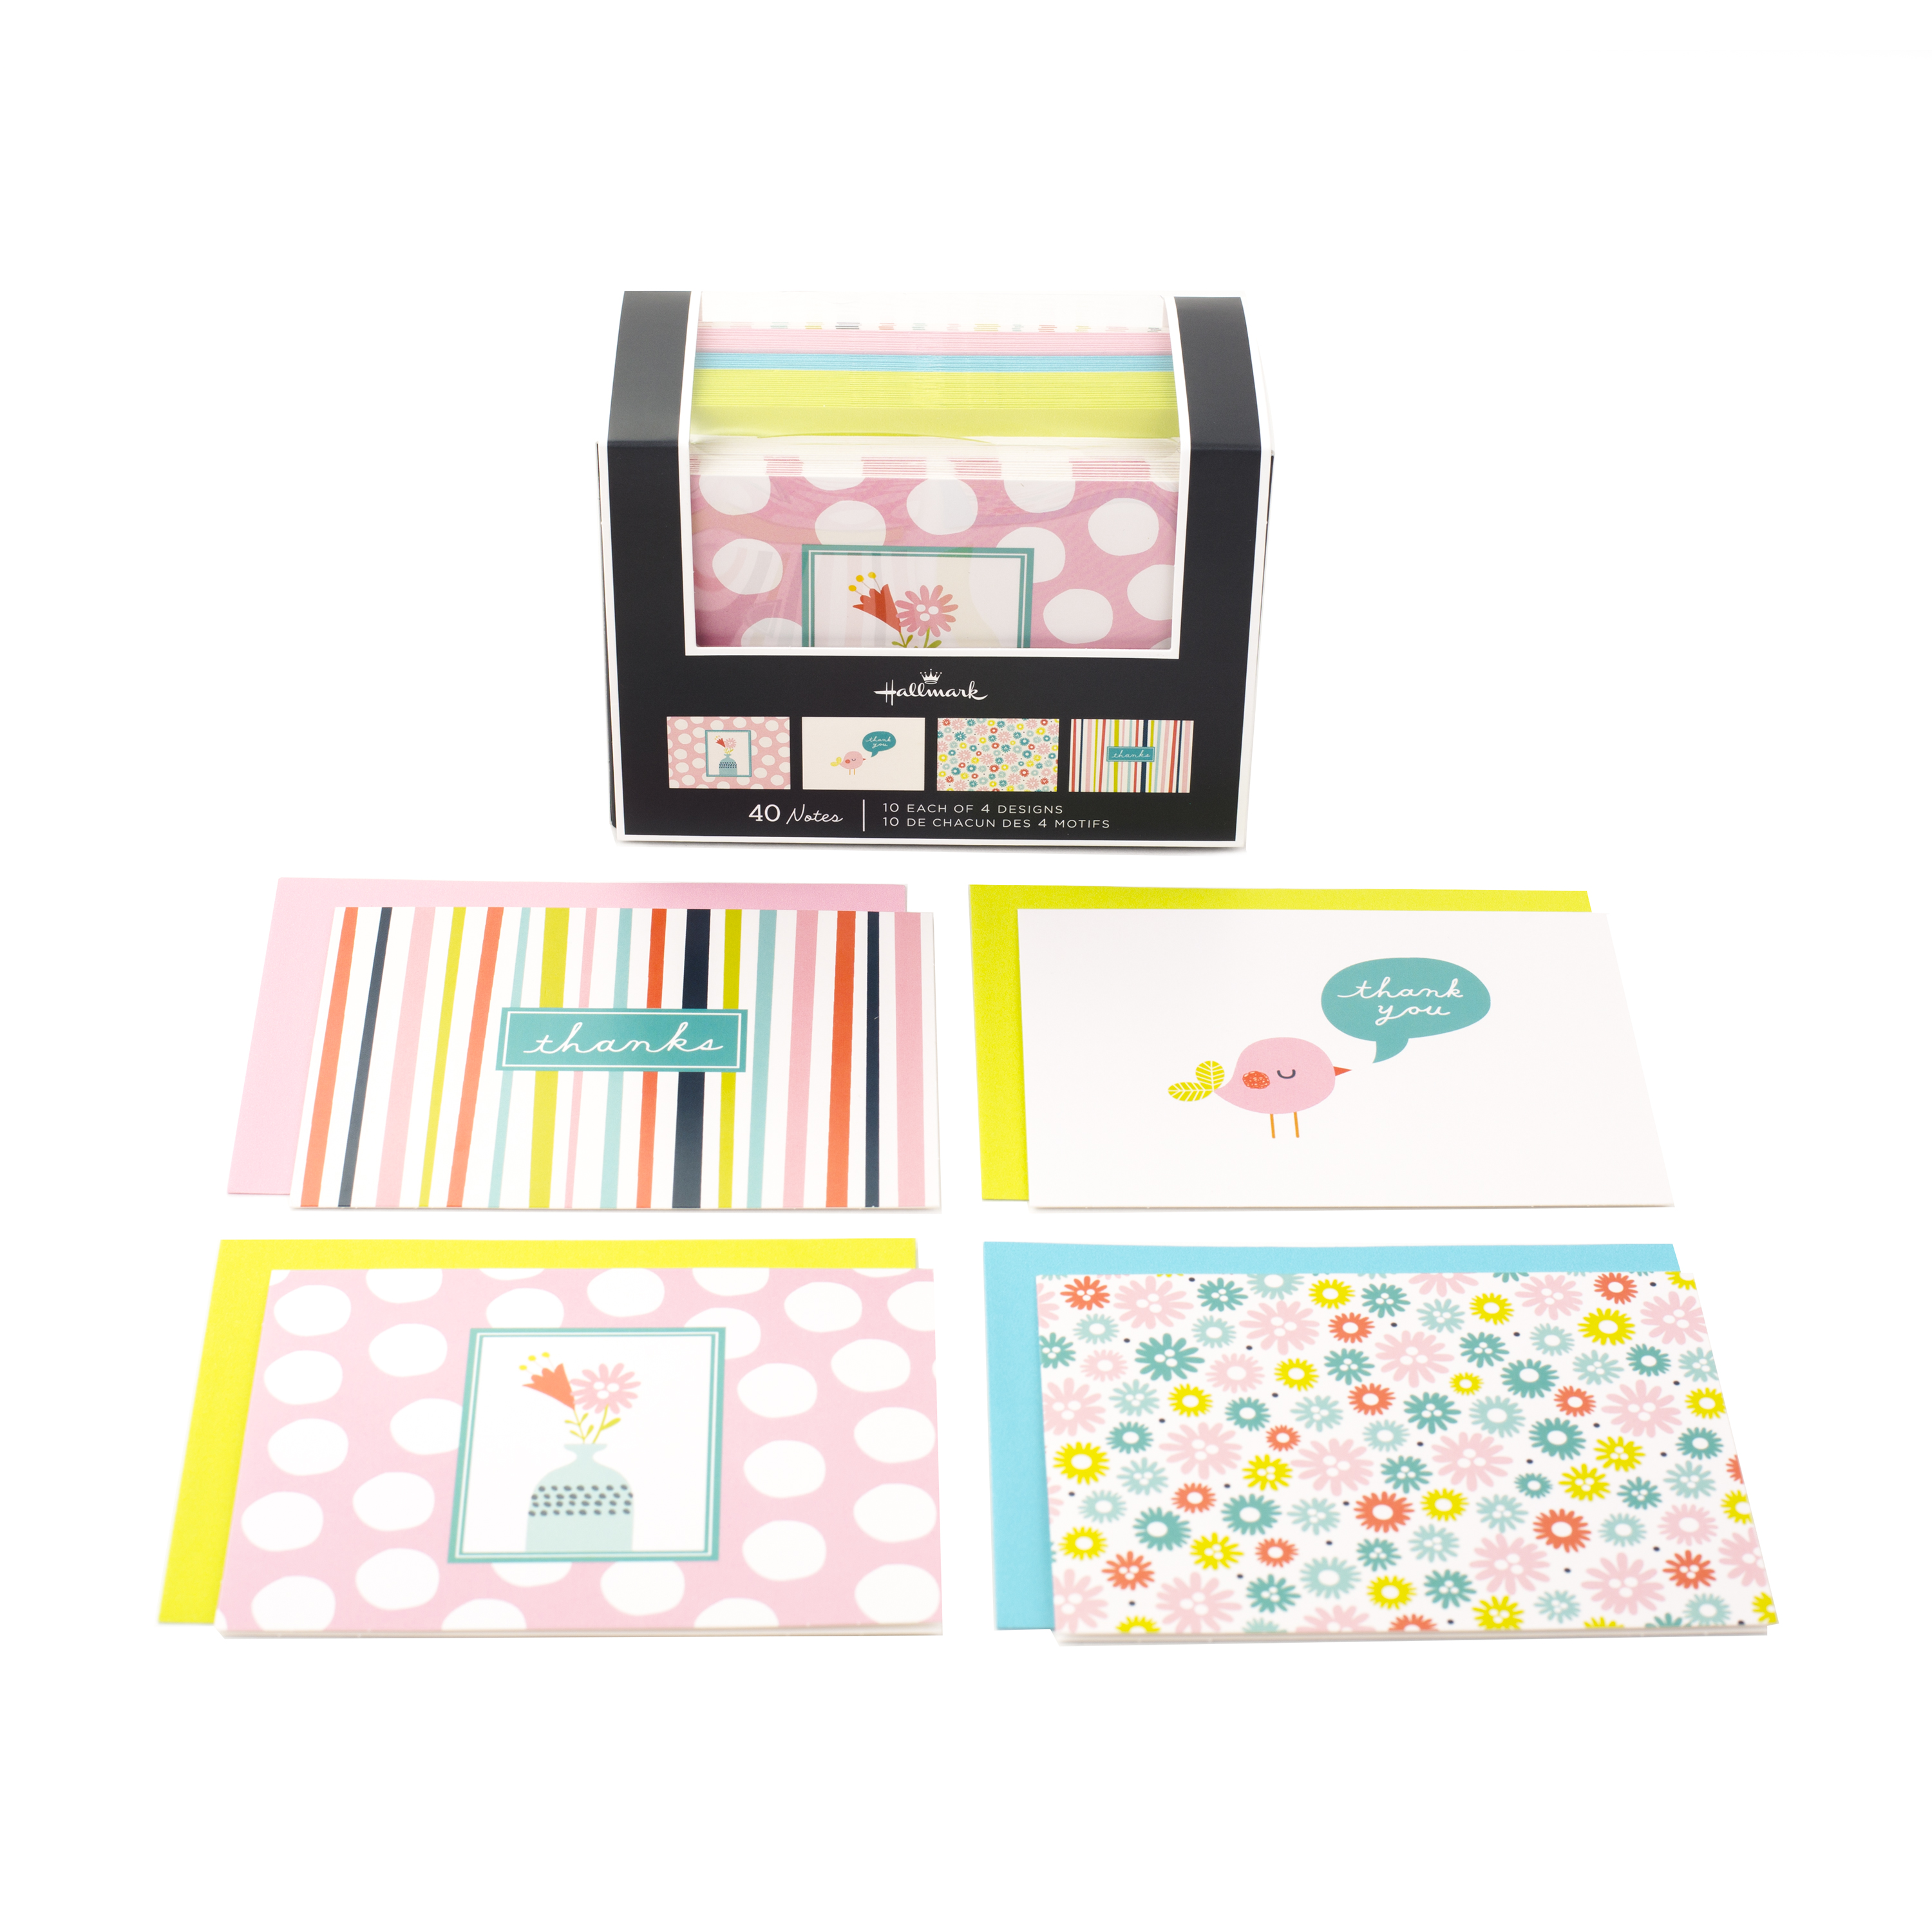 Hallmark Assorted Note Cards (Stripes, Floral, Polka Dots, Bird, 40 Cards and Envelopes)